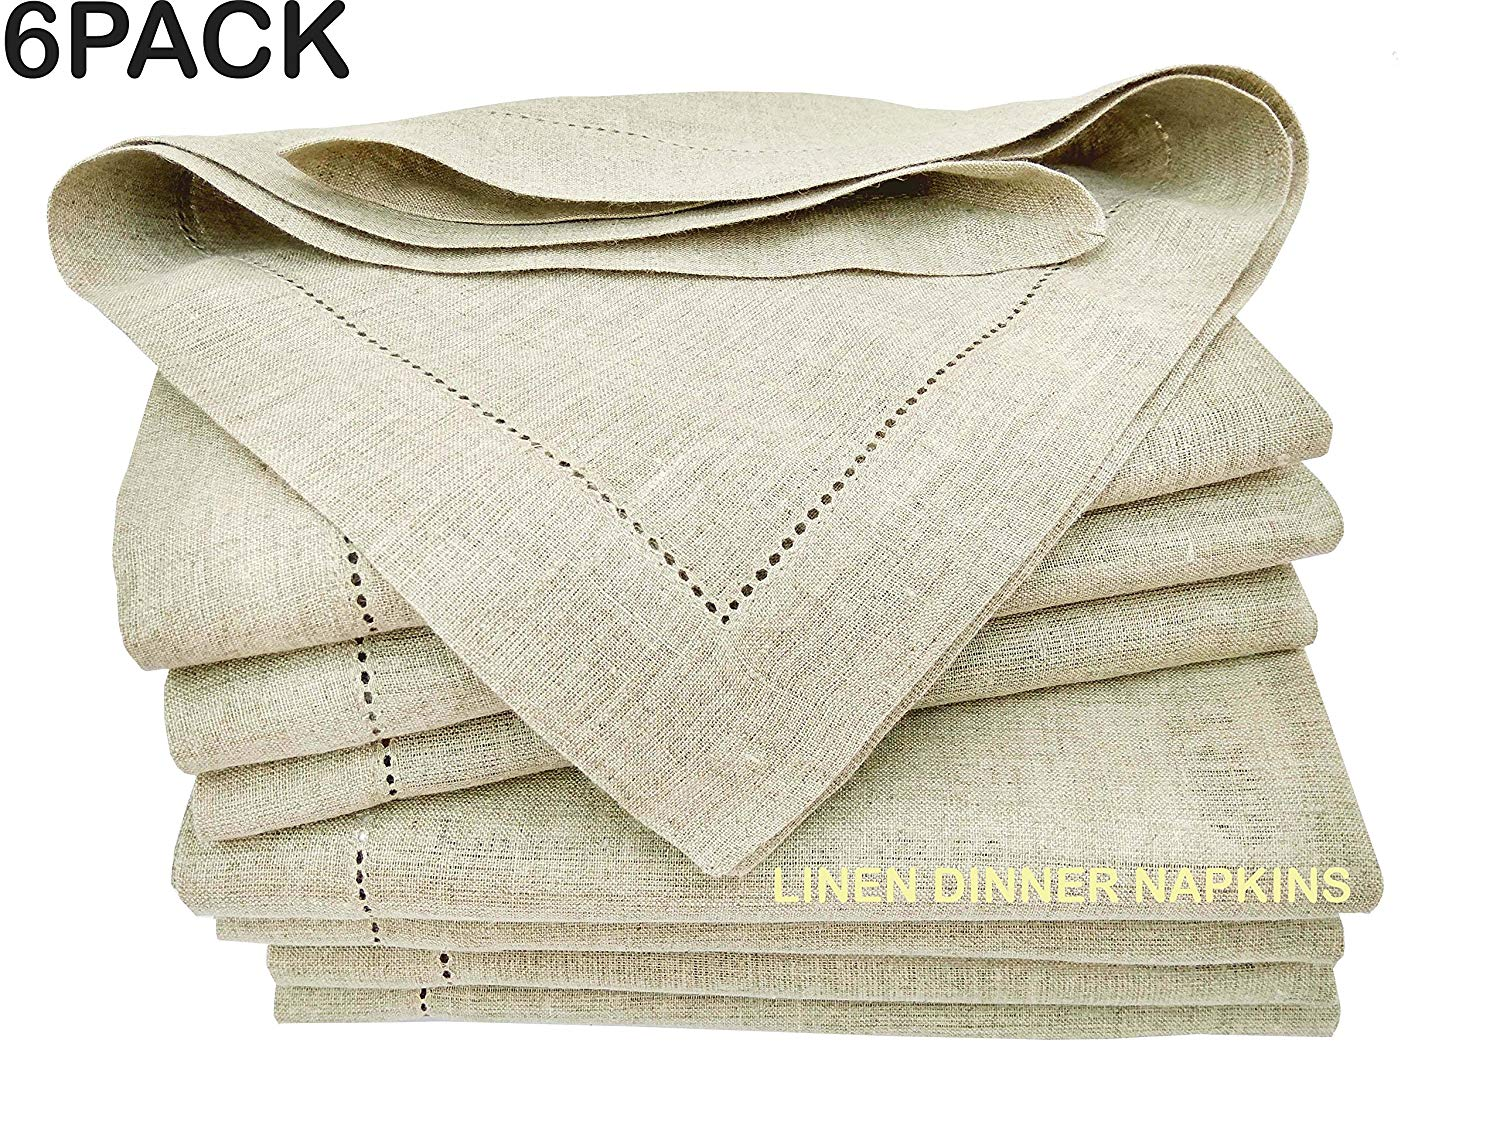 Linen Clubs 6 Pack,100% Pure Linen Rustic Dinner Napkin with Hem Stitched 20X20, Natural Color Hemstitched Hand Made Ladder Lace Look Napkins. One of Life's Little Home Luxuries